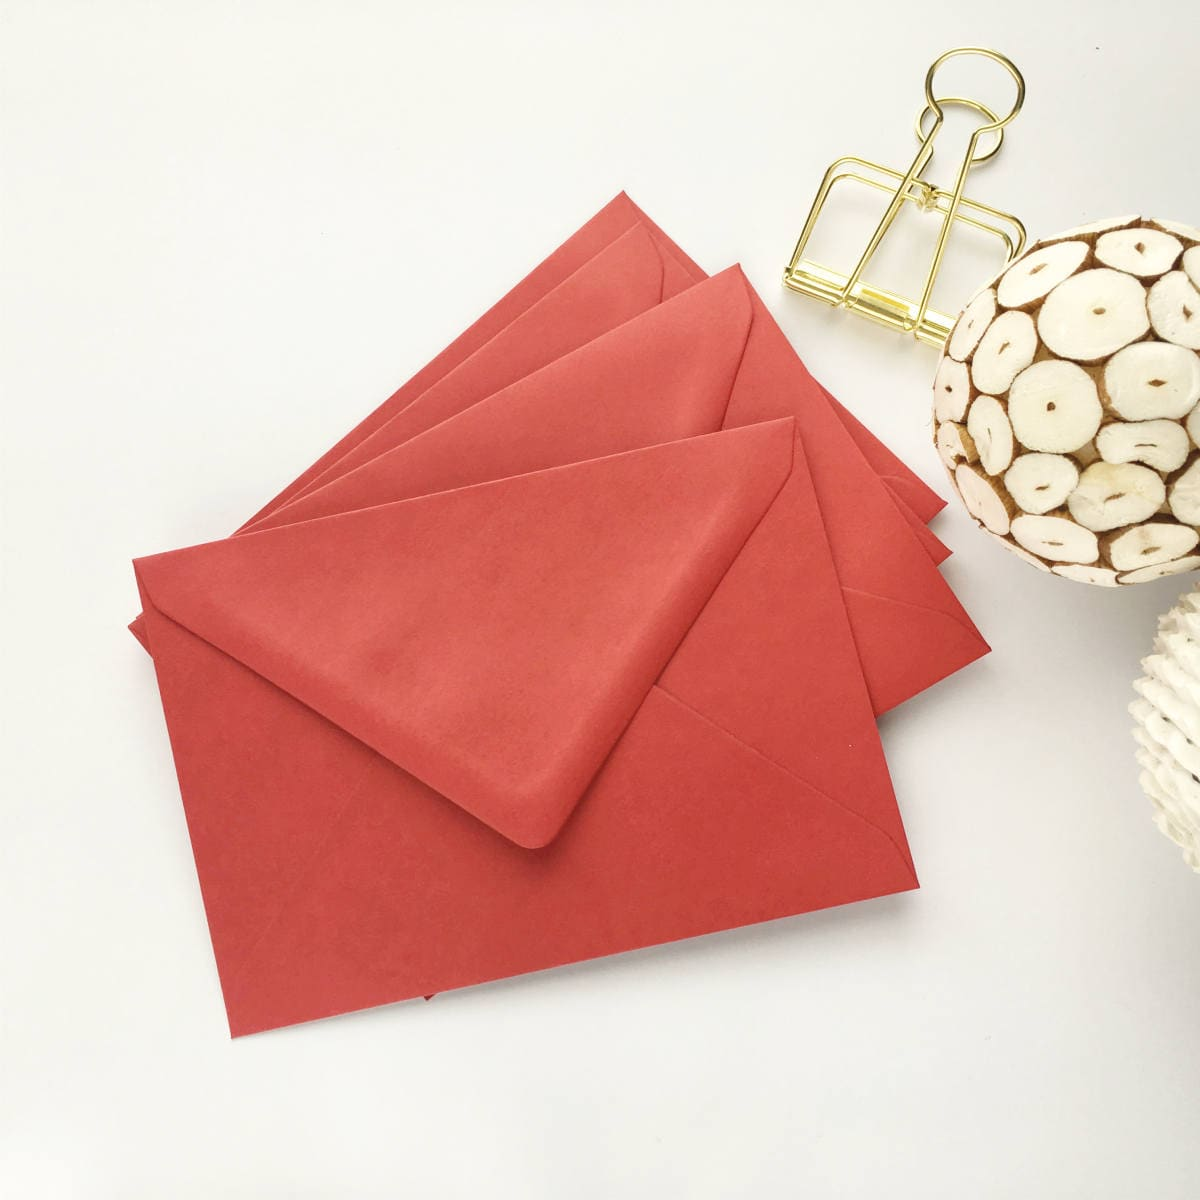 200 Red 4x6 Envelopes A6 C6 Bulk Envelopes Christmas Envelopes